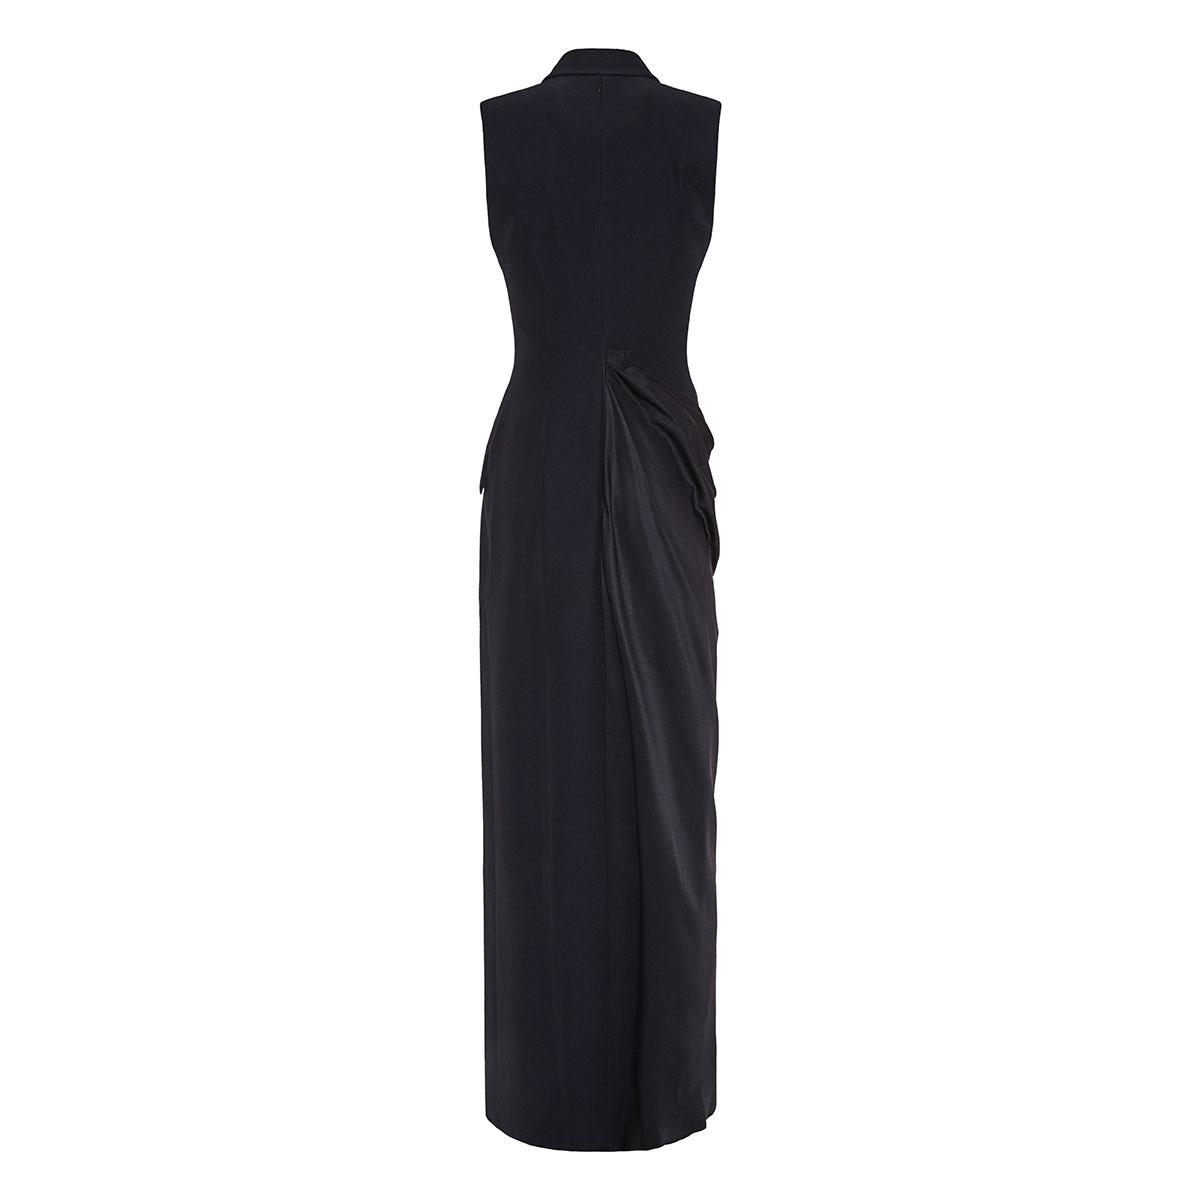 Asymmetric draped tuxedo dress